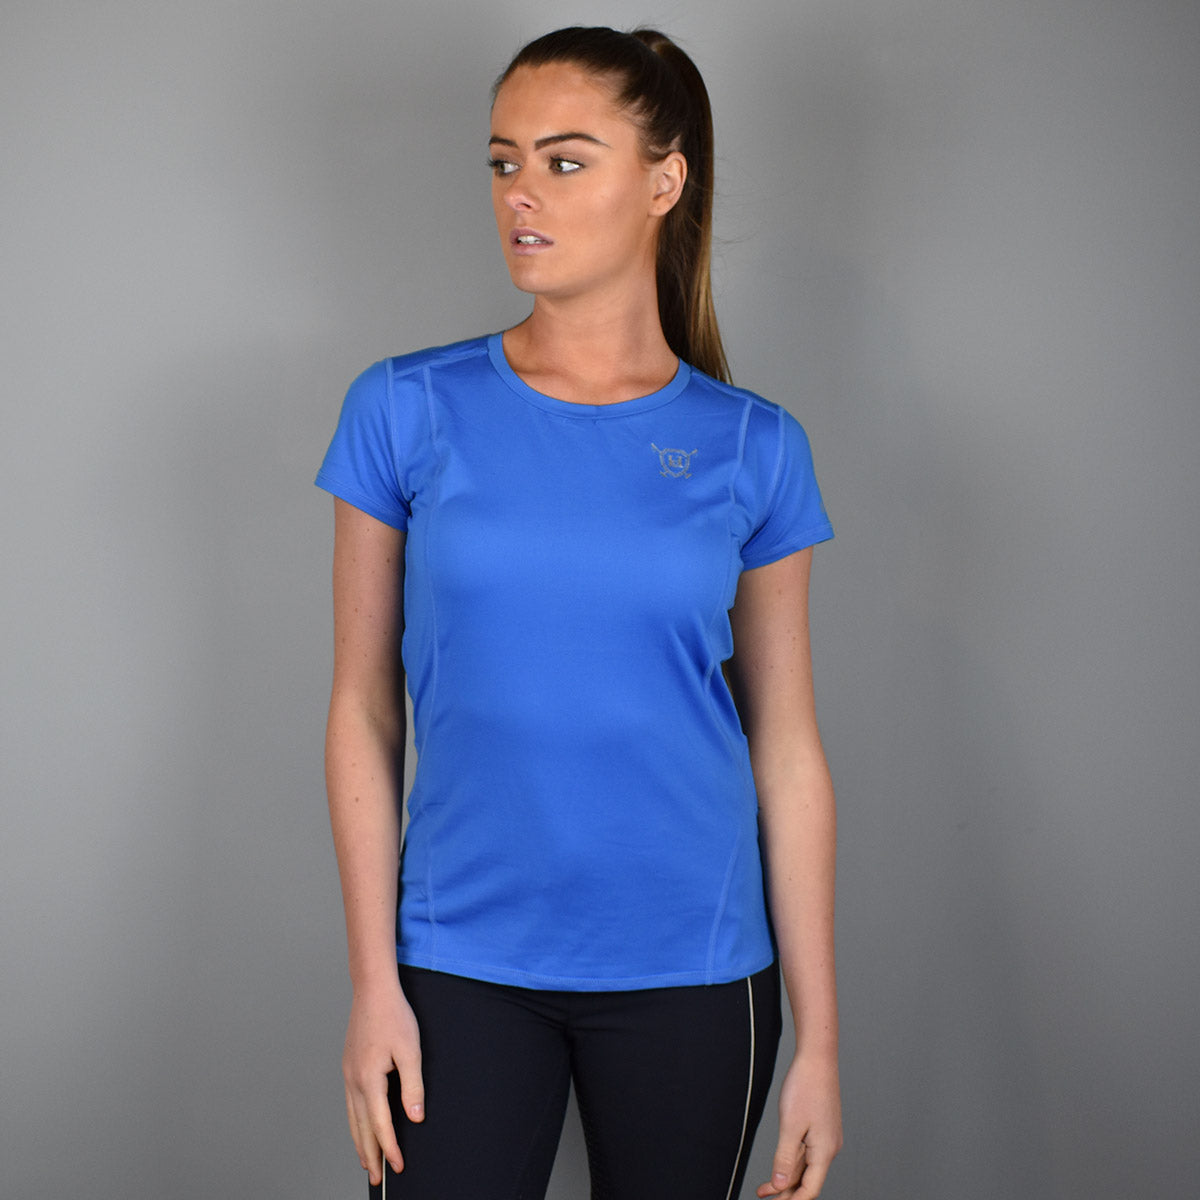 HV Polo Marcella Technical T-Shirt in Marine Blue